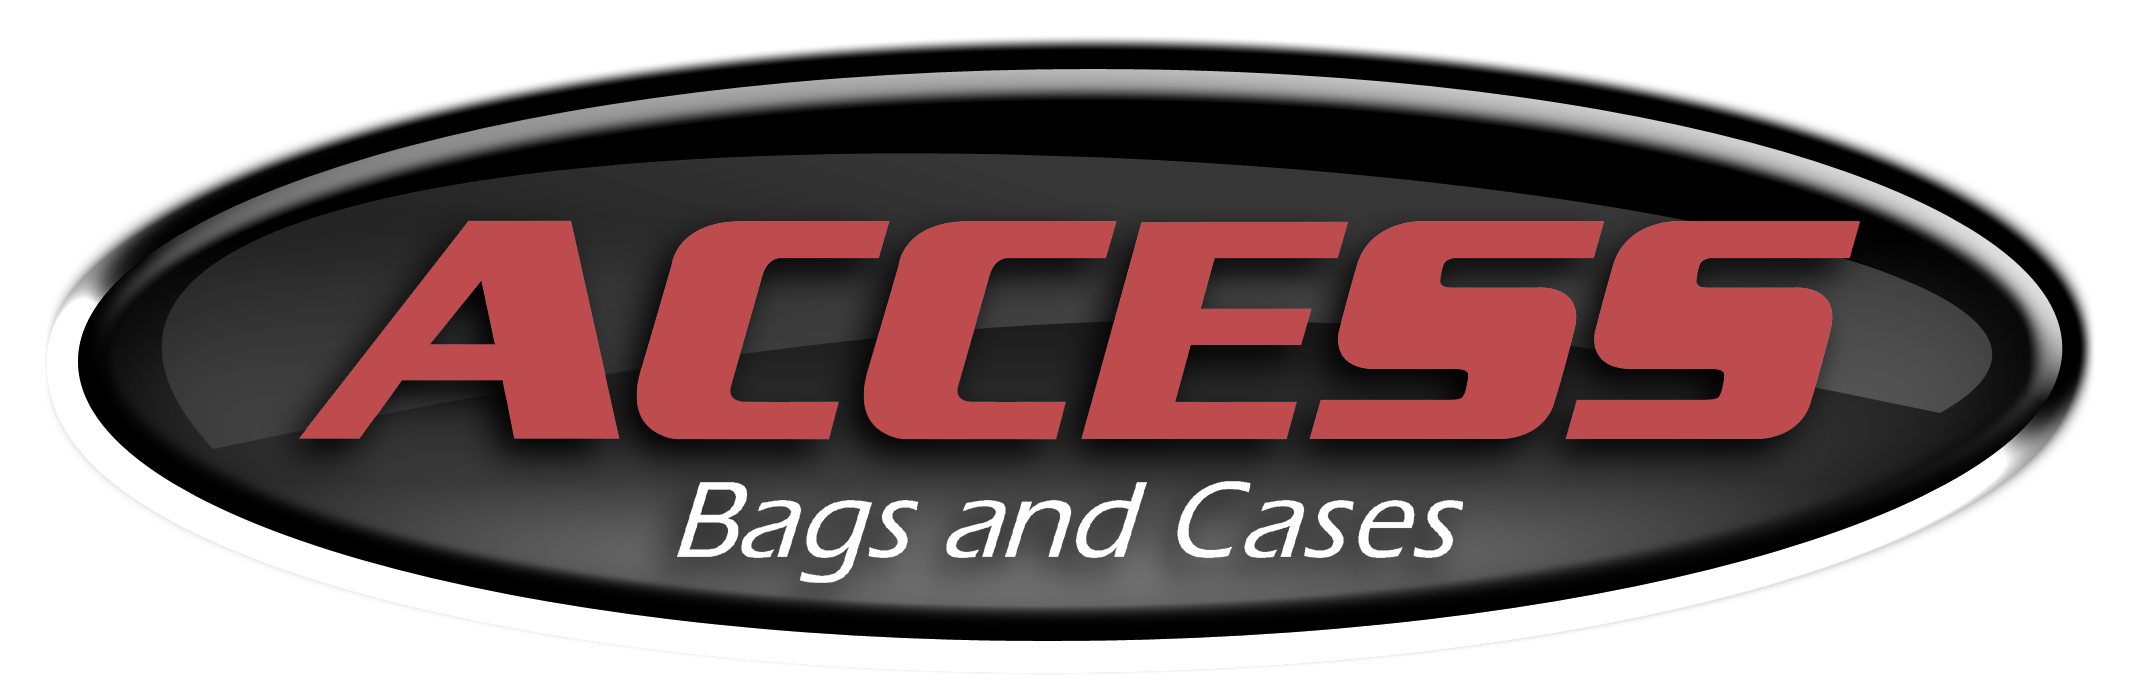 Jeff Black uses access bags and cases